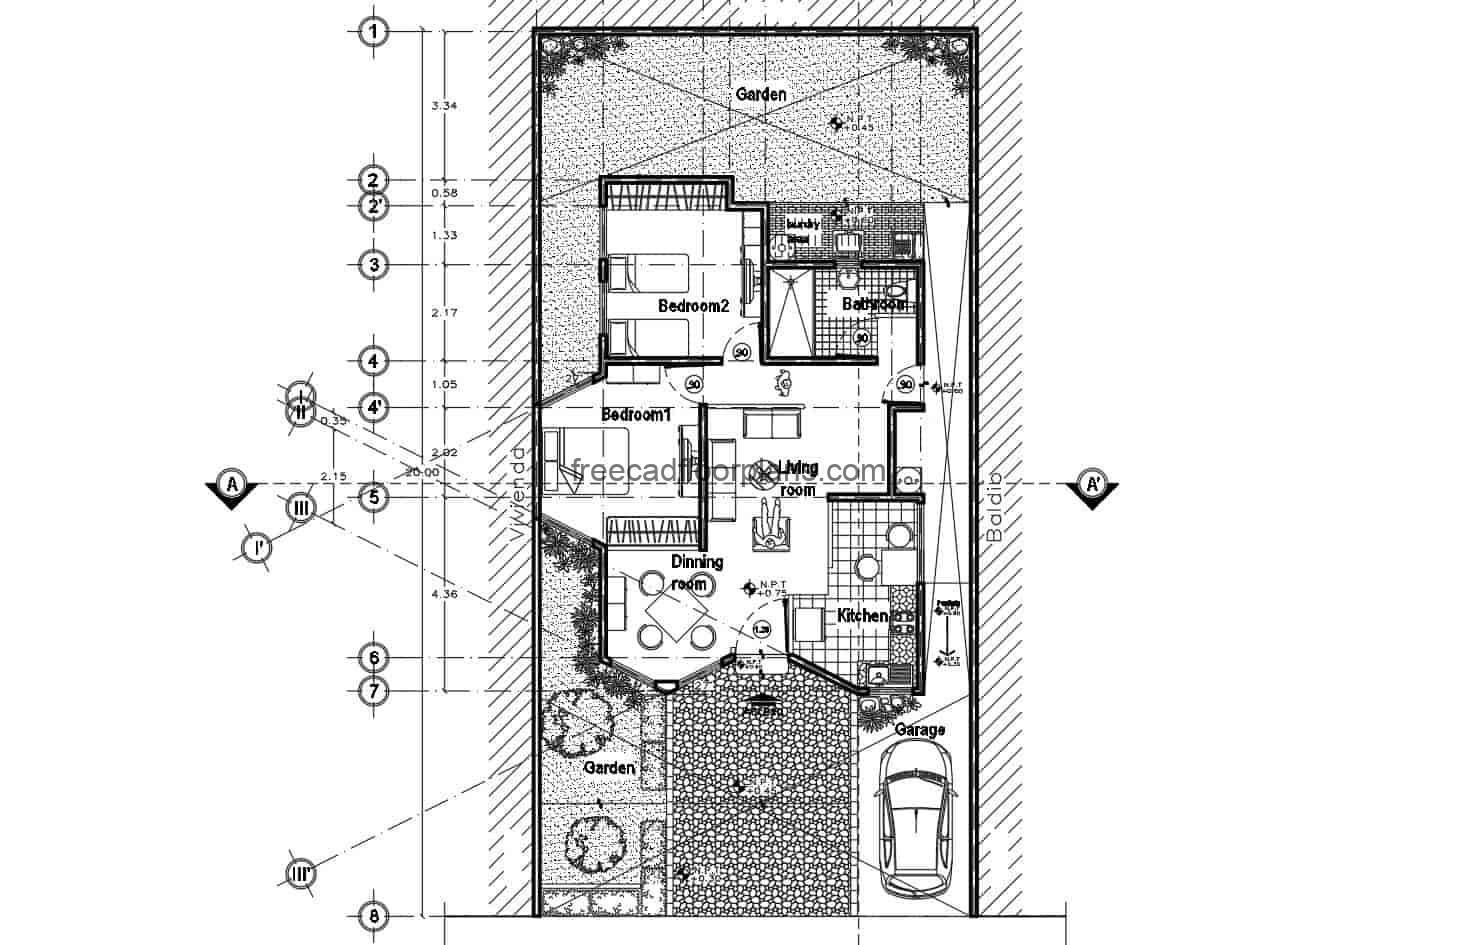 Architectural design plan in DWG format from Autocad single level with two rooms, plans for free download editable